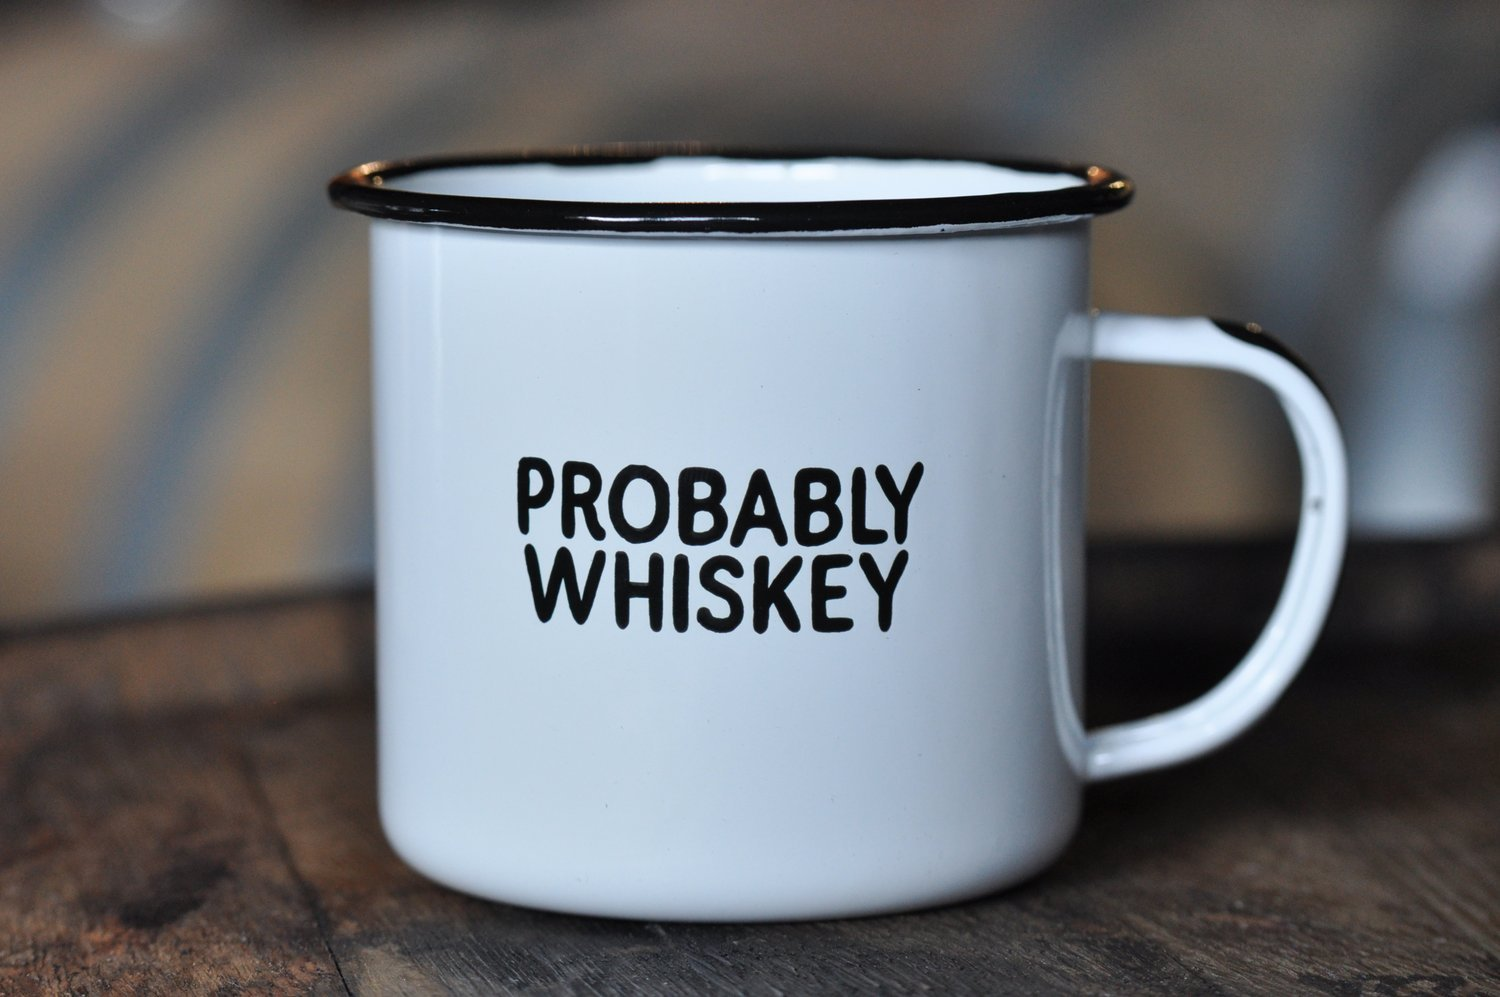 PROBABLY WHISKEY | Enamel''Coffee'' Mug | Funny Bar Gift for Whiskey, Bourbon, and Scotch Lovers, Dads, Moms, Fathers, Men, Whisky Geeks | Practical Cup for Kitchen, Campfire, Home, and Travel